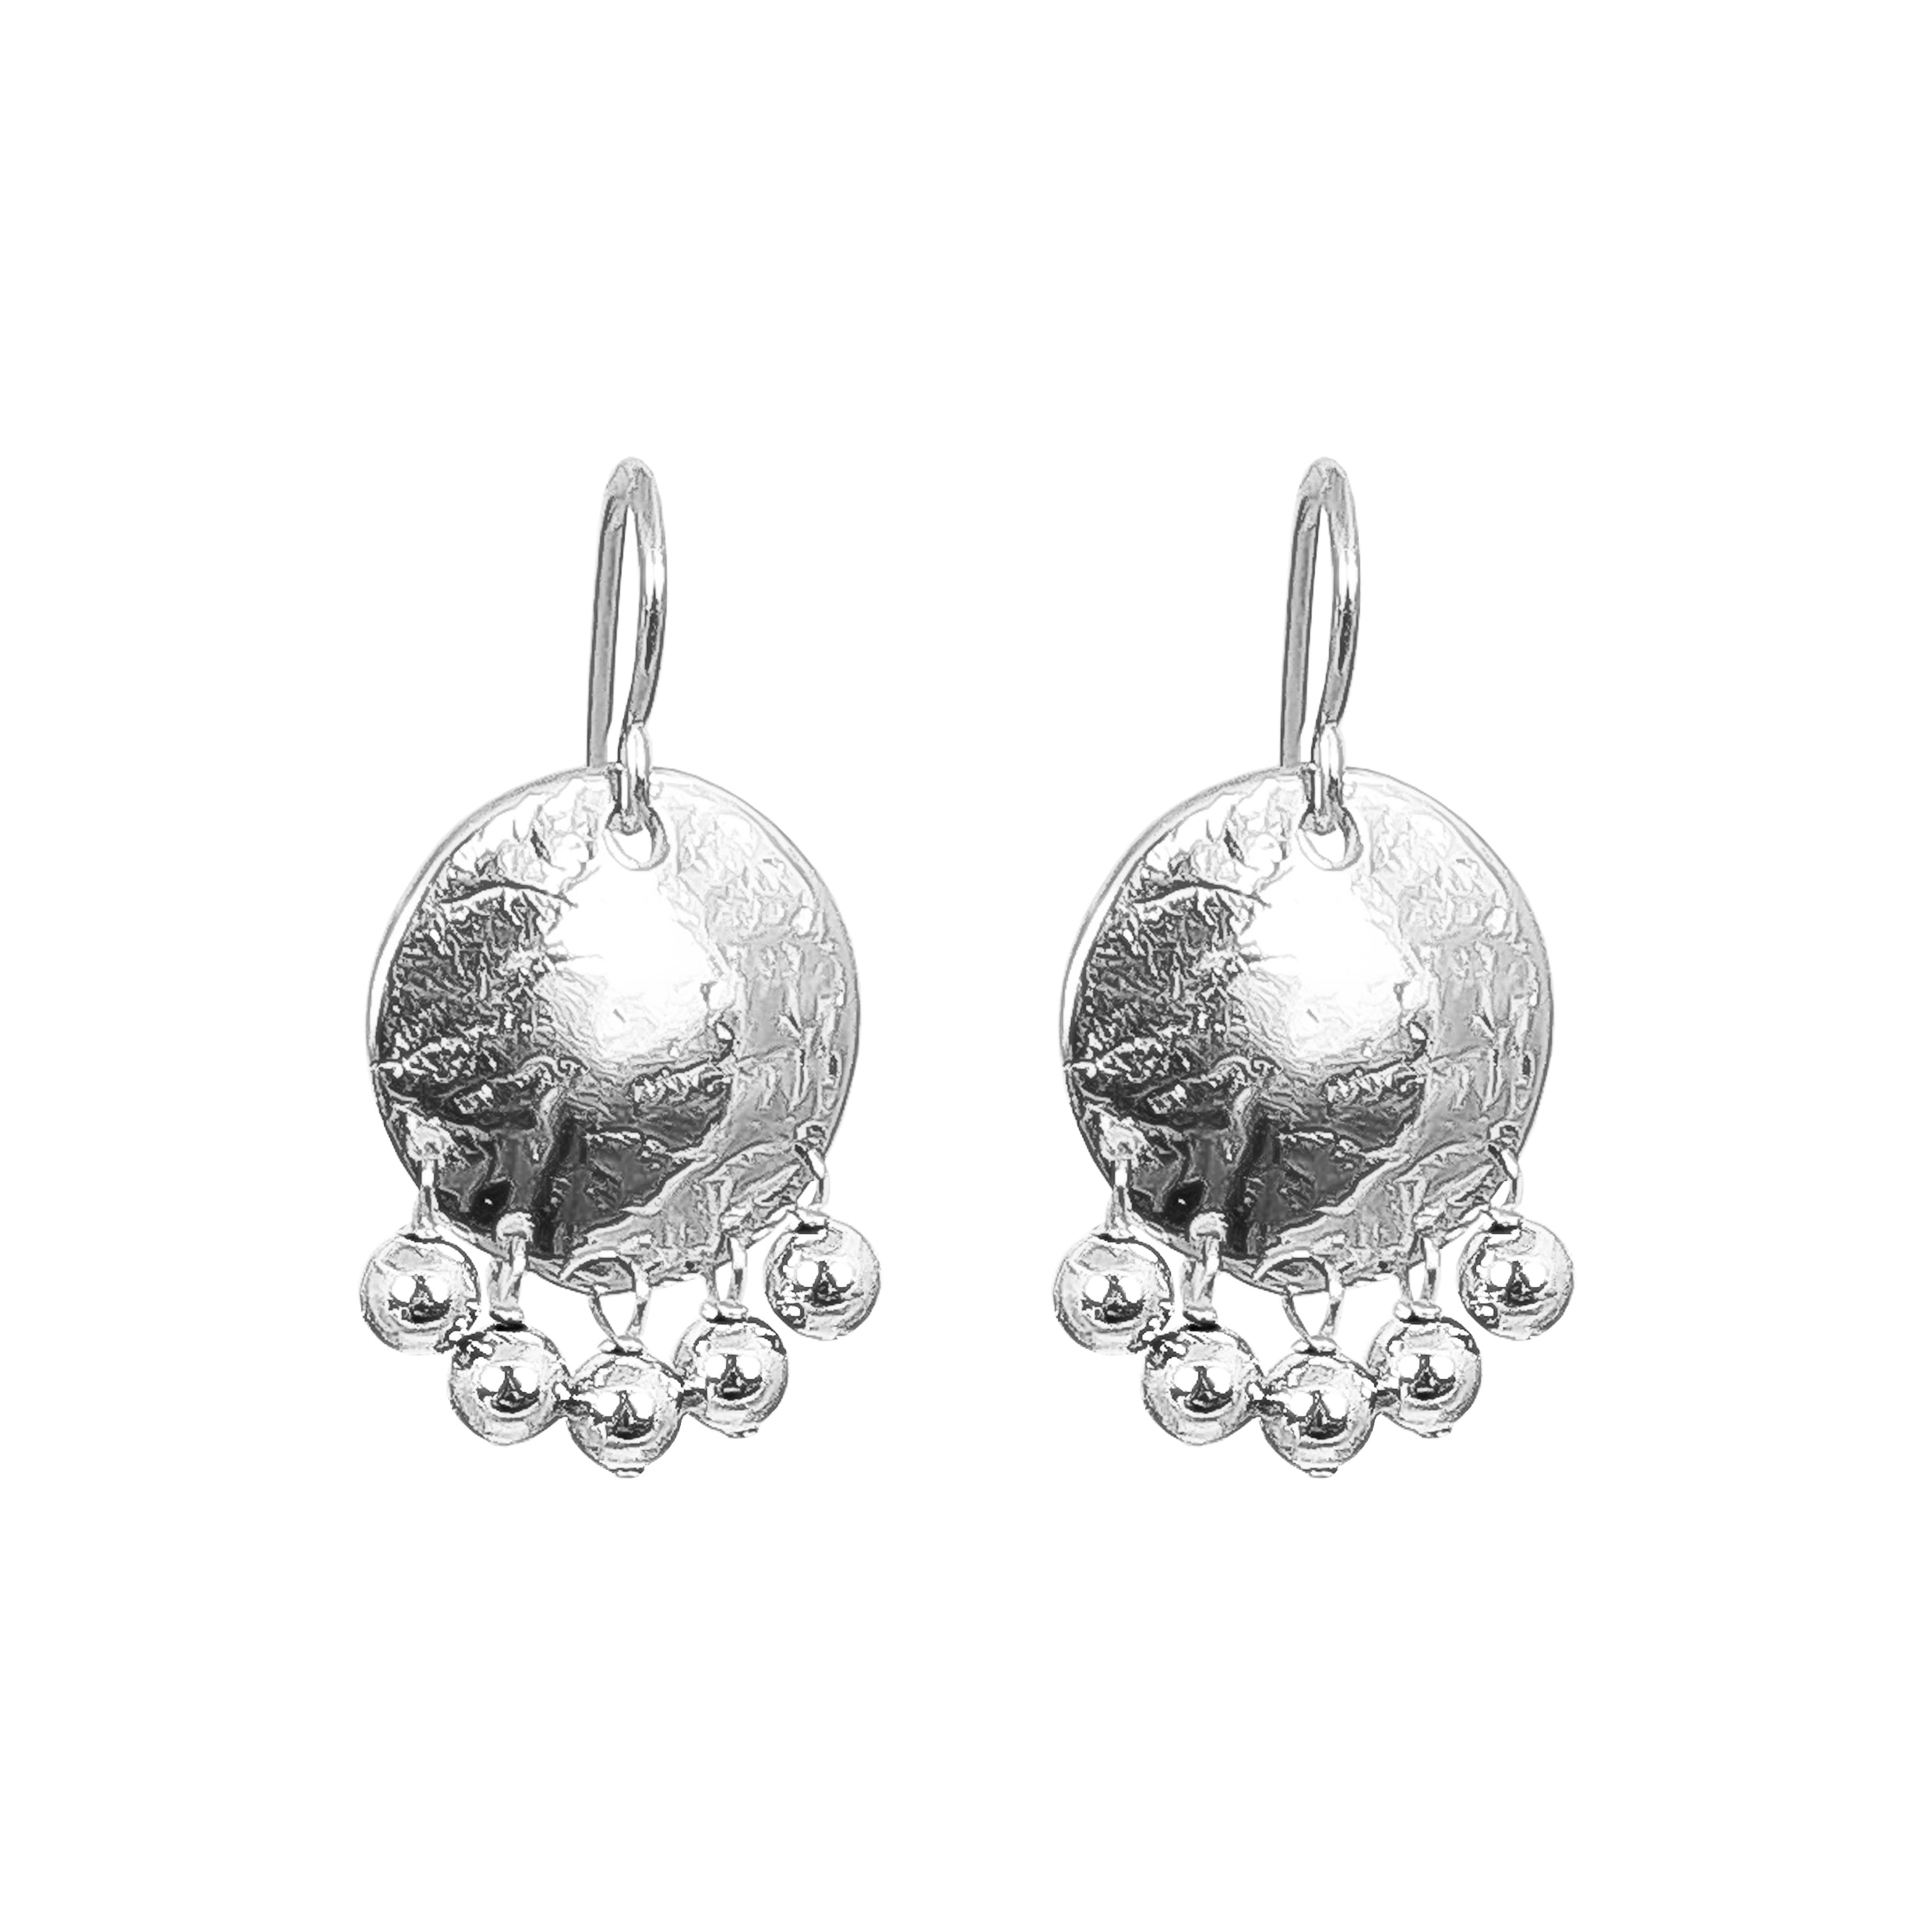 Harlow Small Disc Earrings | Silver With Polished Silver Drops